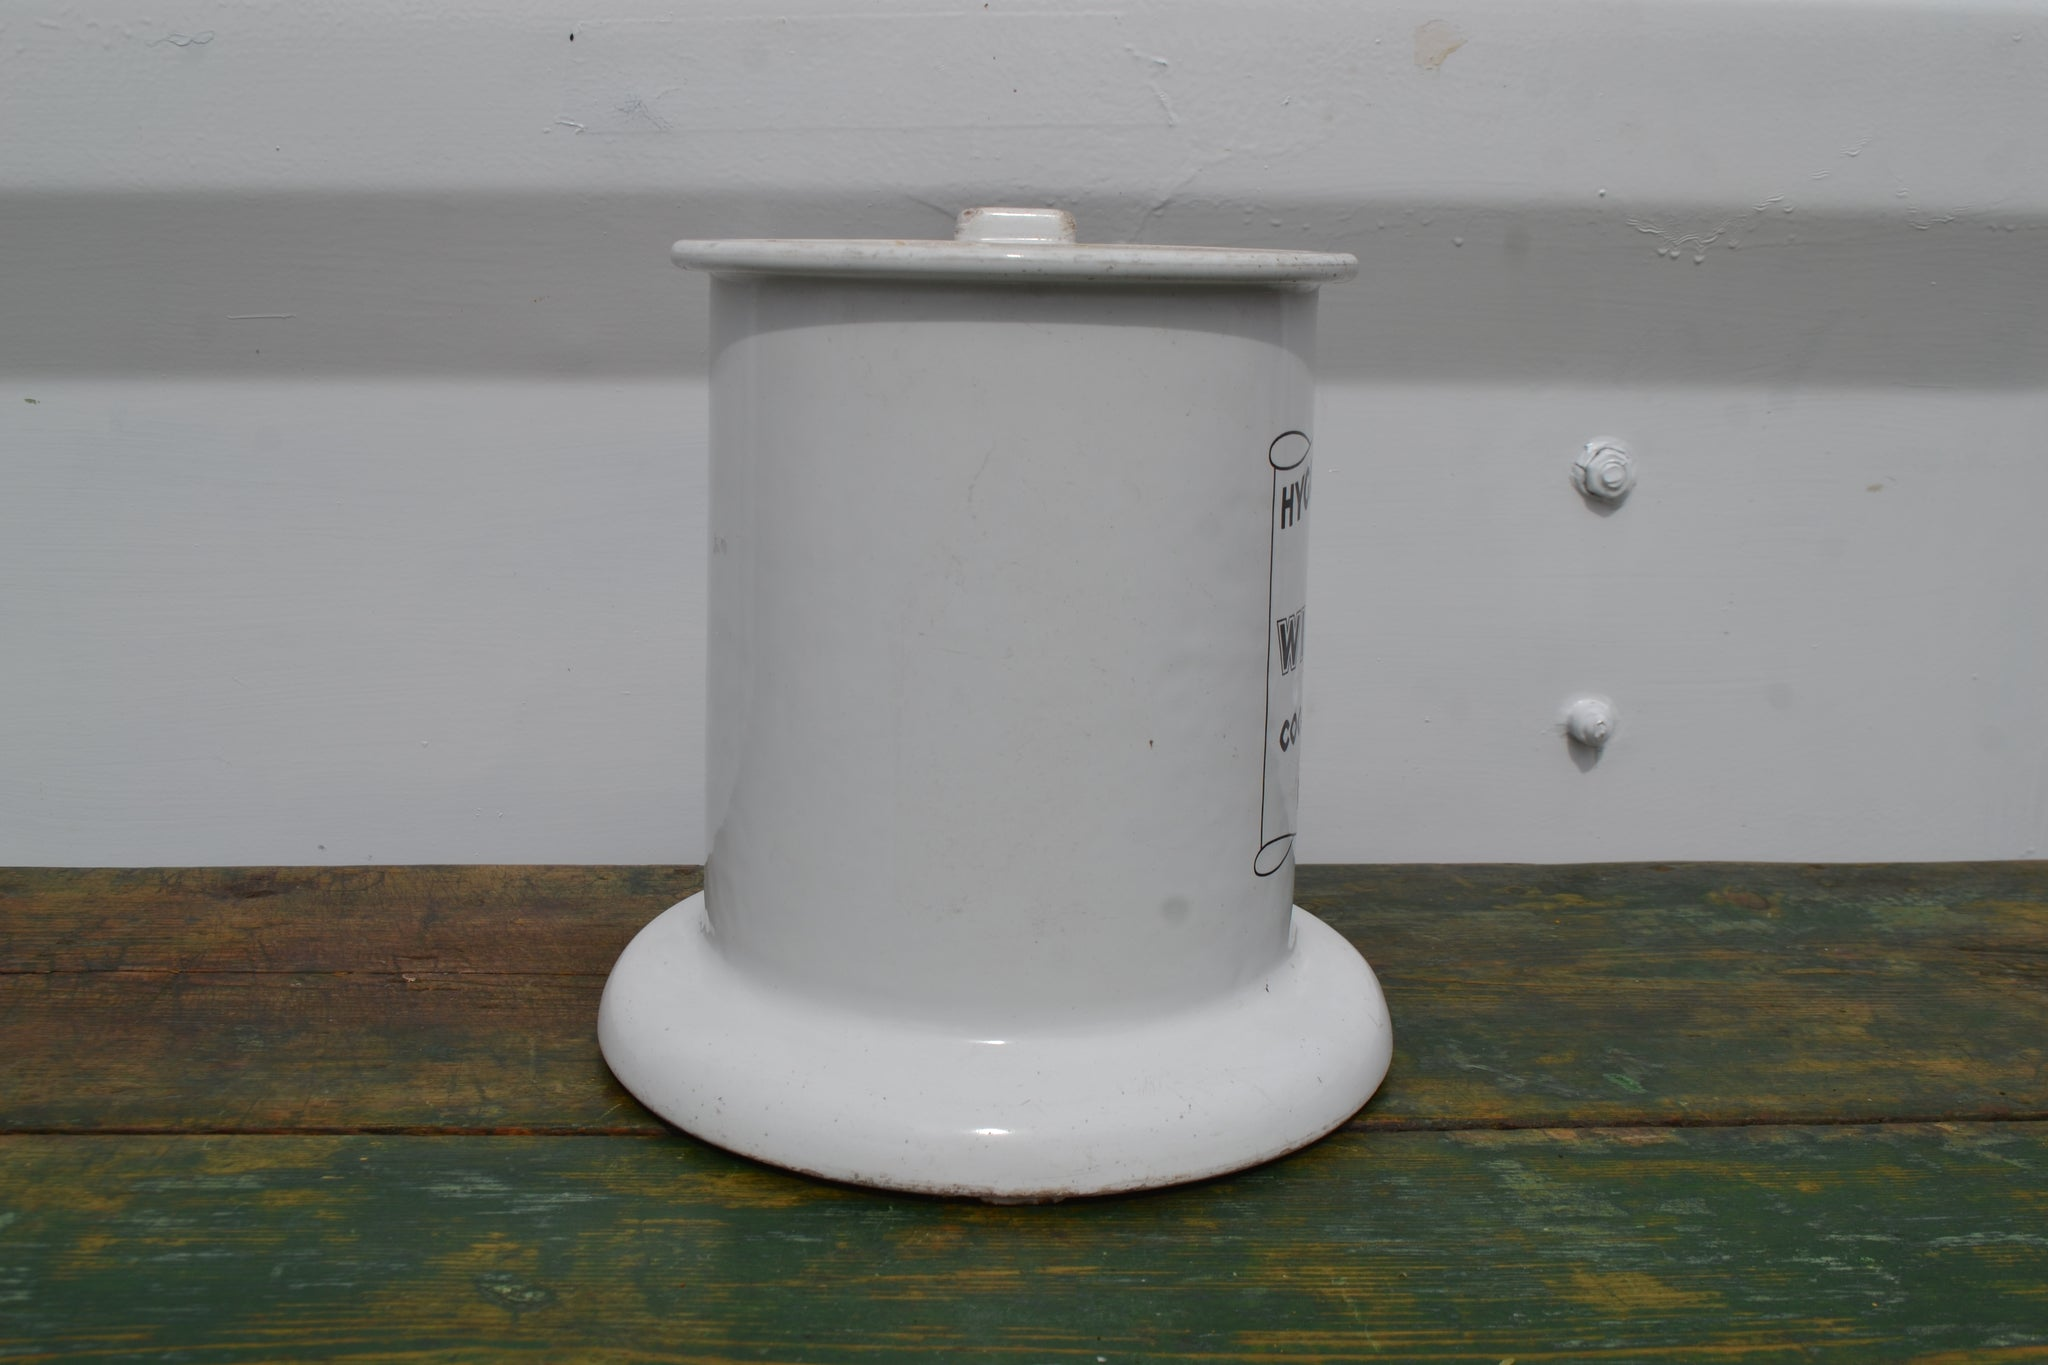 An enamel hygienic slicer for Wilson's cooked meats